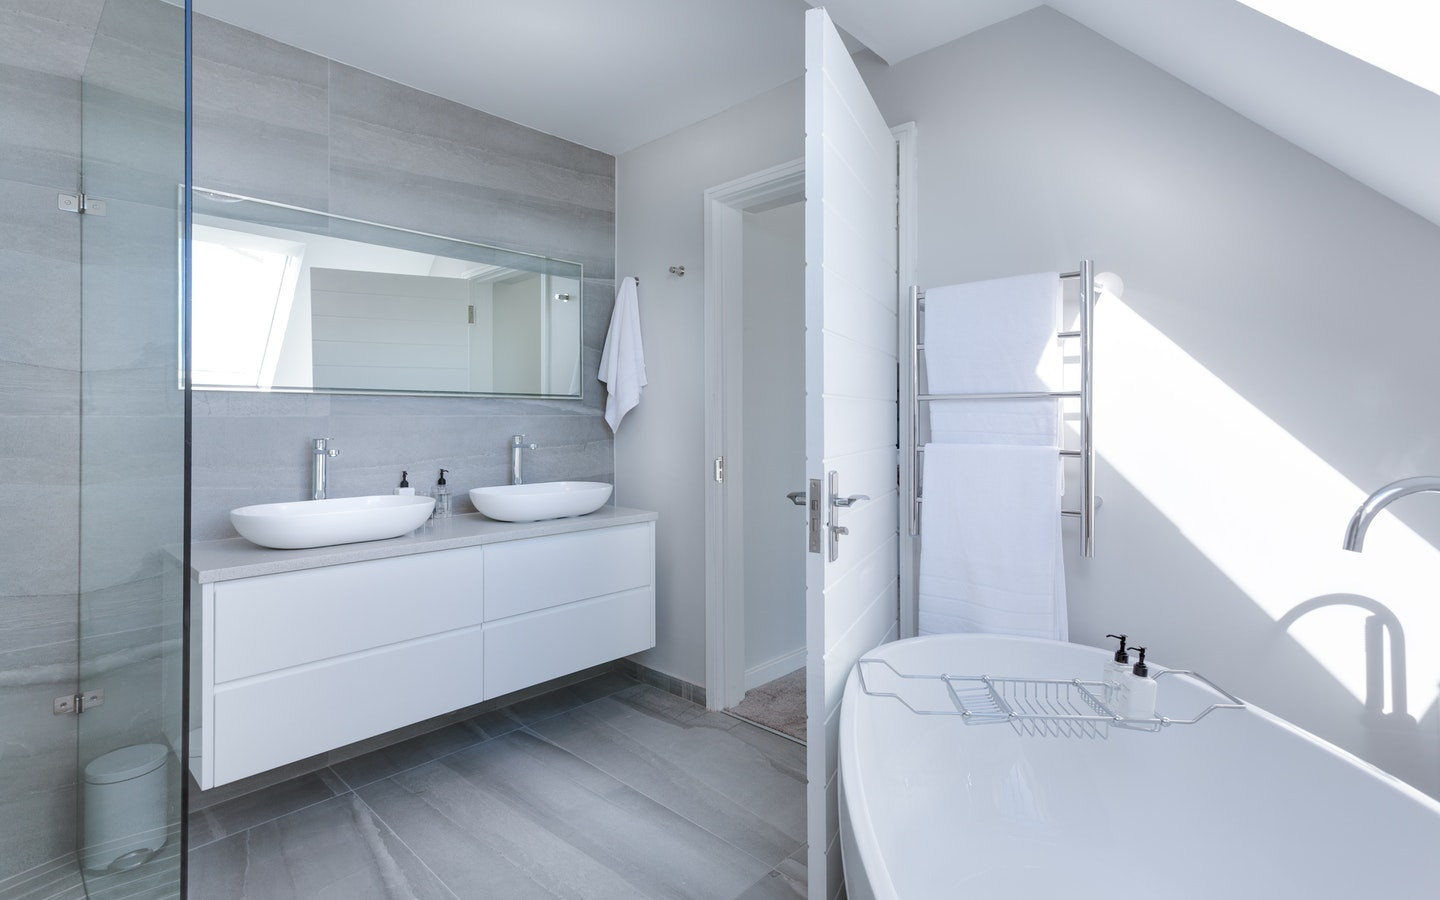 One of the tricks to make small bathrooms feel bigger is to get a statement mirror